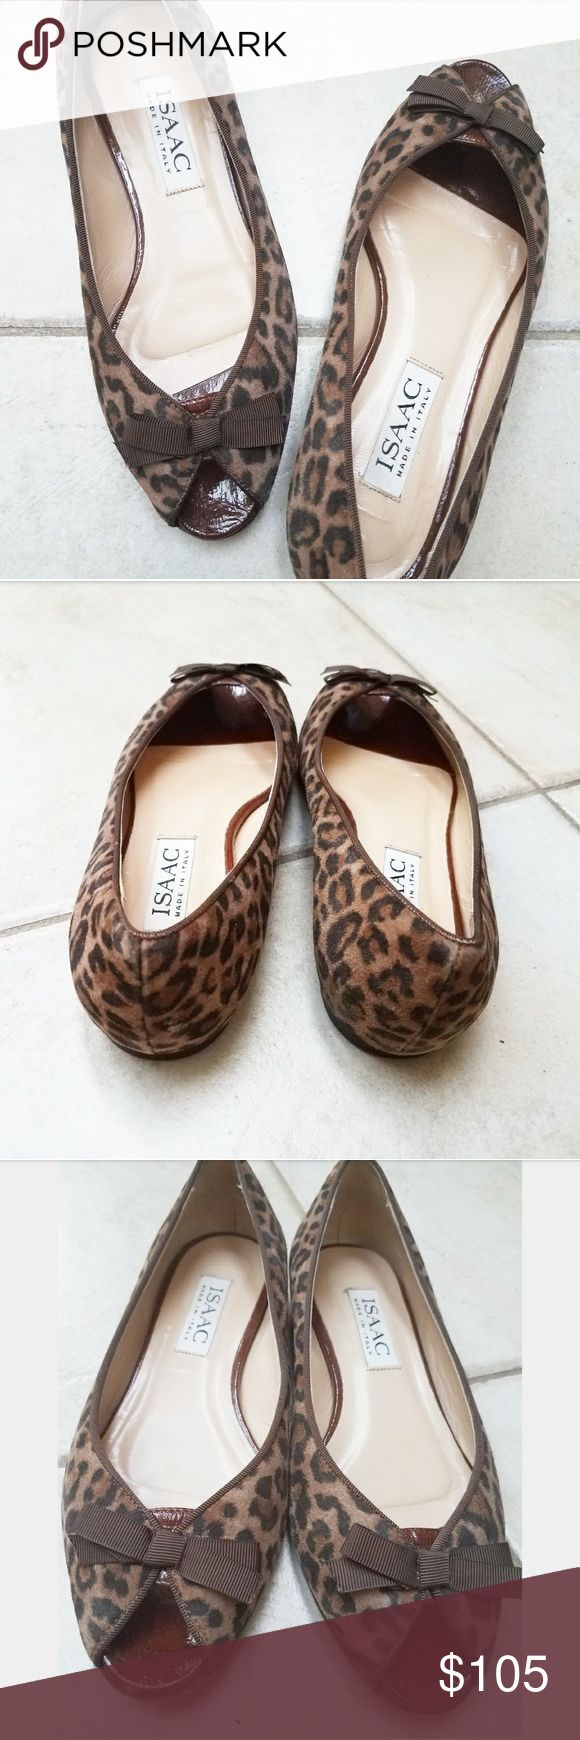 """New! ISAAC Made In Italy Leopard Peep Toe Flats ISAAC Made In Italy. """"BELLA"""" Flats / Loafers in leopard  Pristine condition! Beautiful suede leopard print ballet flats with a stylish glossy patent leather peep toe & elegant brown grosgrain bows! Italian leather. Comfortable cushioned insoles. Made in Italy.  Women's shoe size 5.5 M  Bundle & save! ISAAC Shoes Flats & Loafers"""